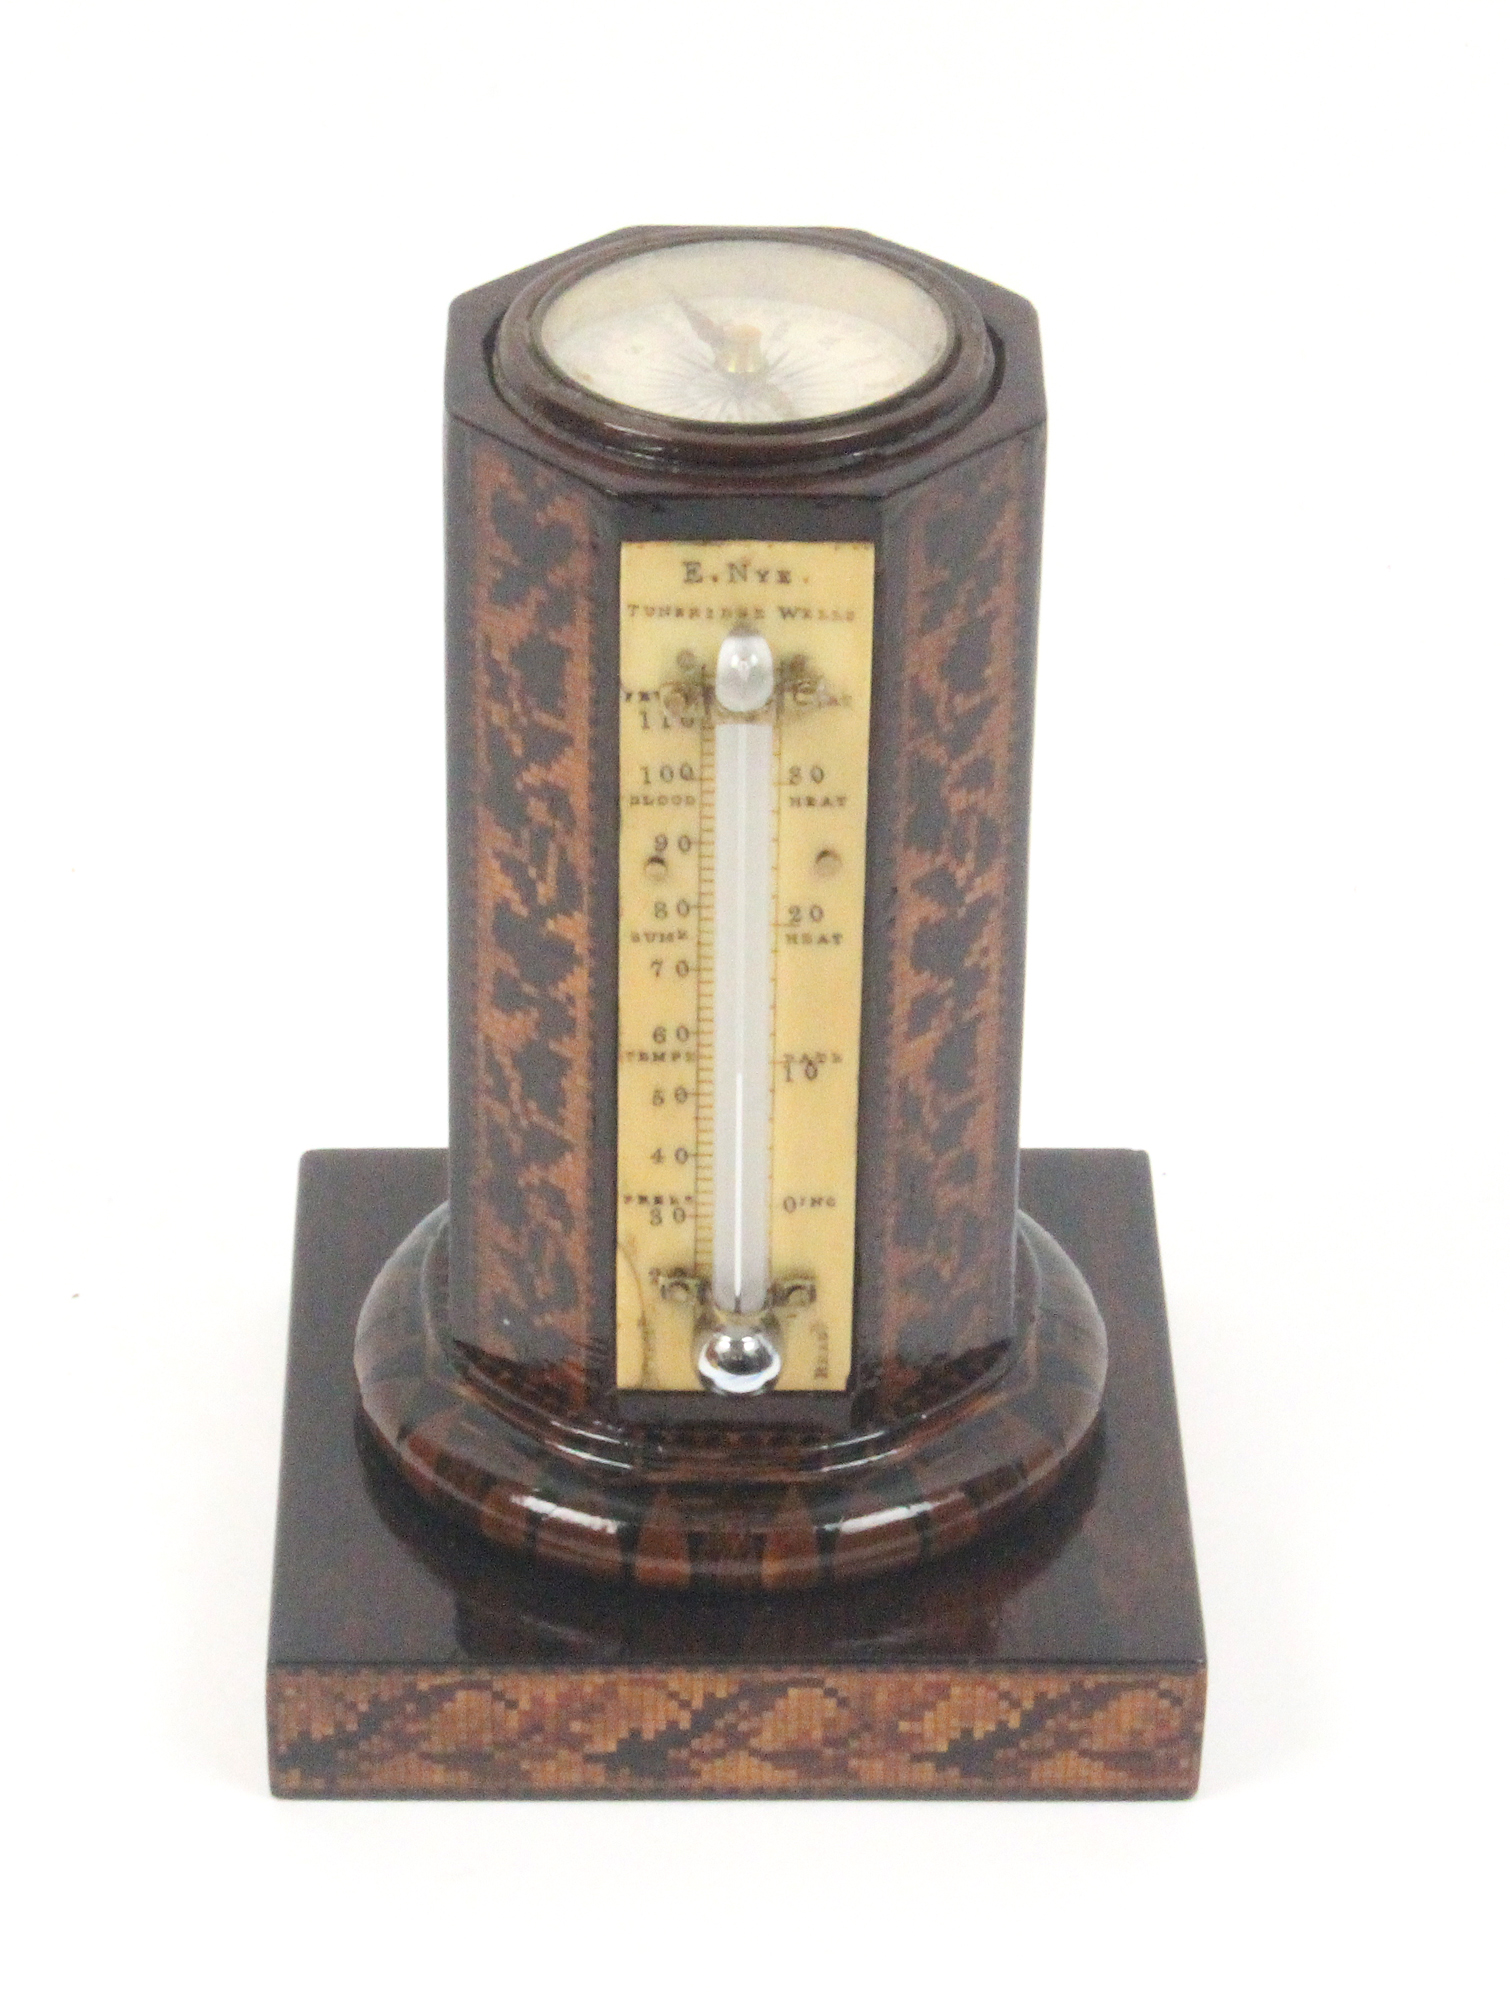 Lot 40 - A rosewood thermometer and compass stand by Nye, the square base with floral mosaic sides, the